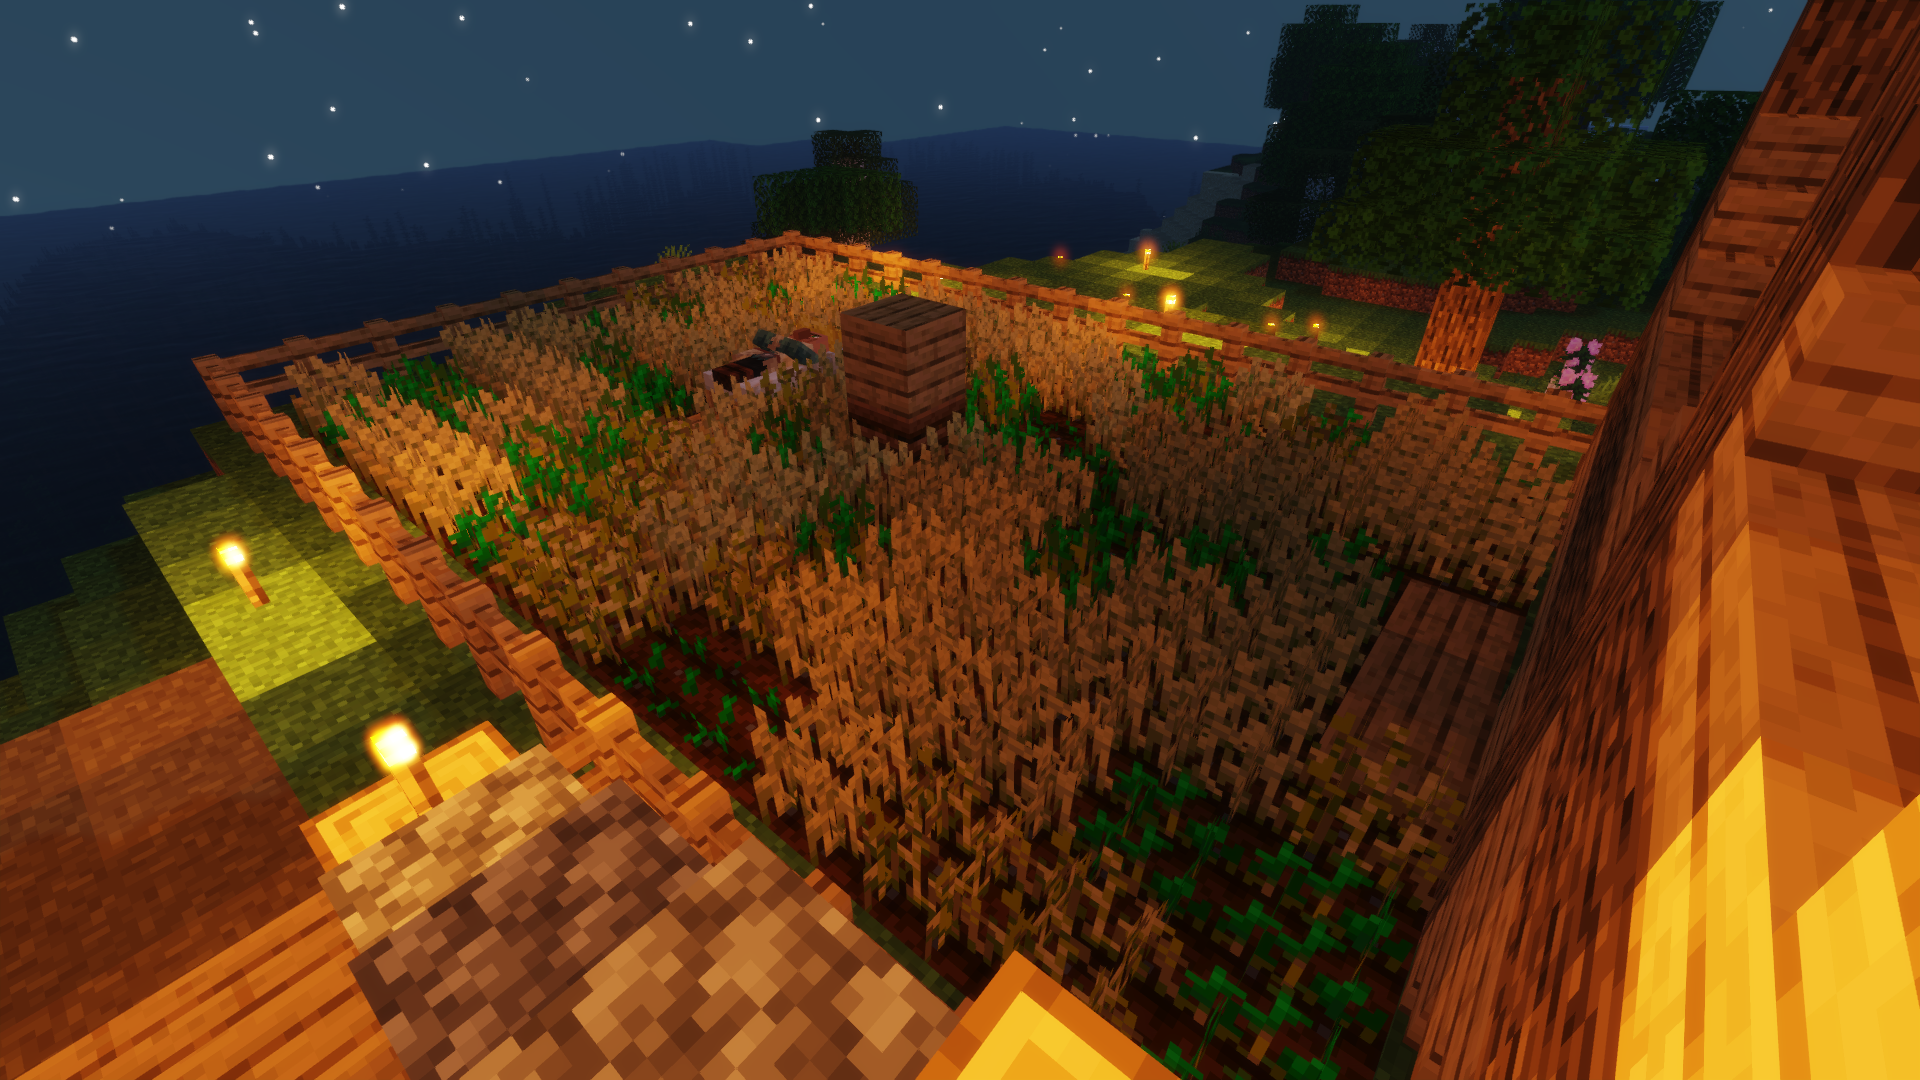 Getting A Villager To Farm For Me 1 14 4 Java Discussion Minecraft Java Edition Minecraft Forum Minecraft Forum